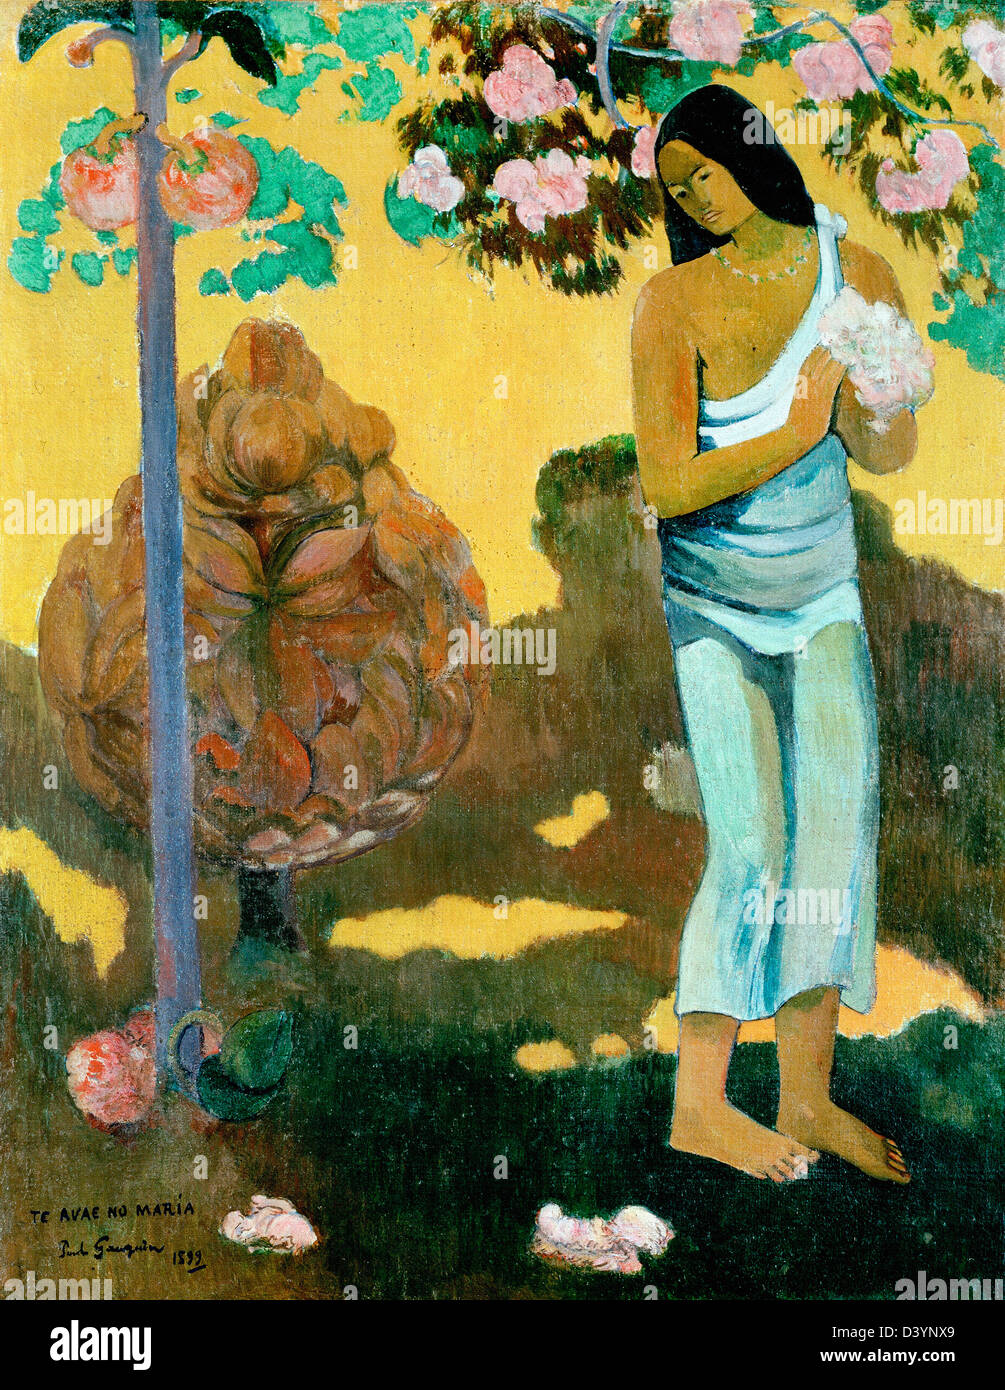 Paul Gauguin, The Month of Mary 1899 Oil on canvas. Hermitage, St. Petersburg, Russia - Stock Image